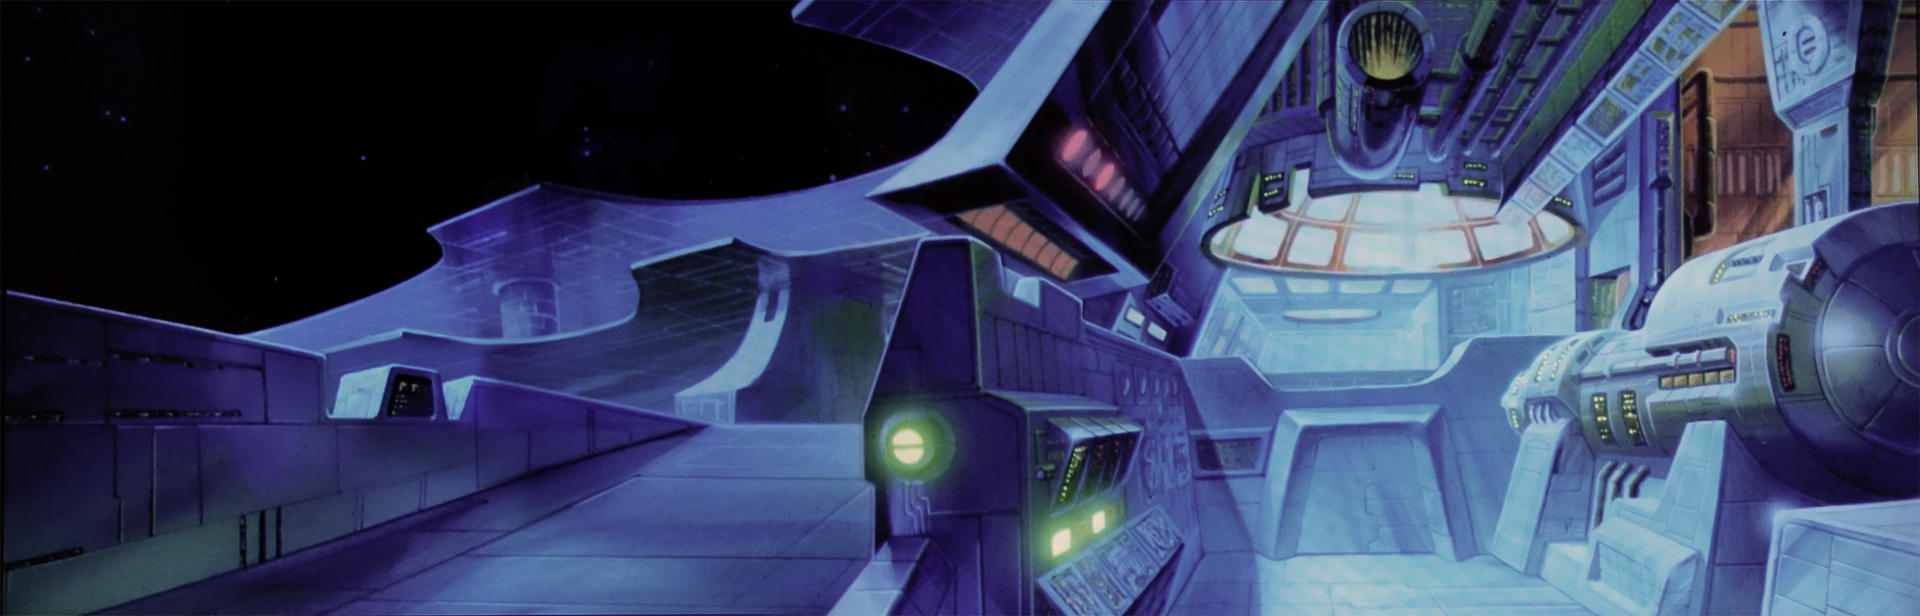 Transformers Animated Wallpaper Transformers The Movie Animation Cels And Backgrounds